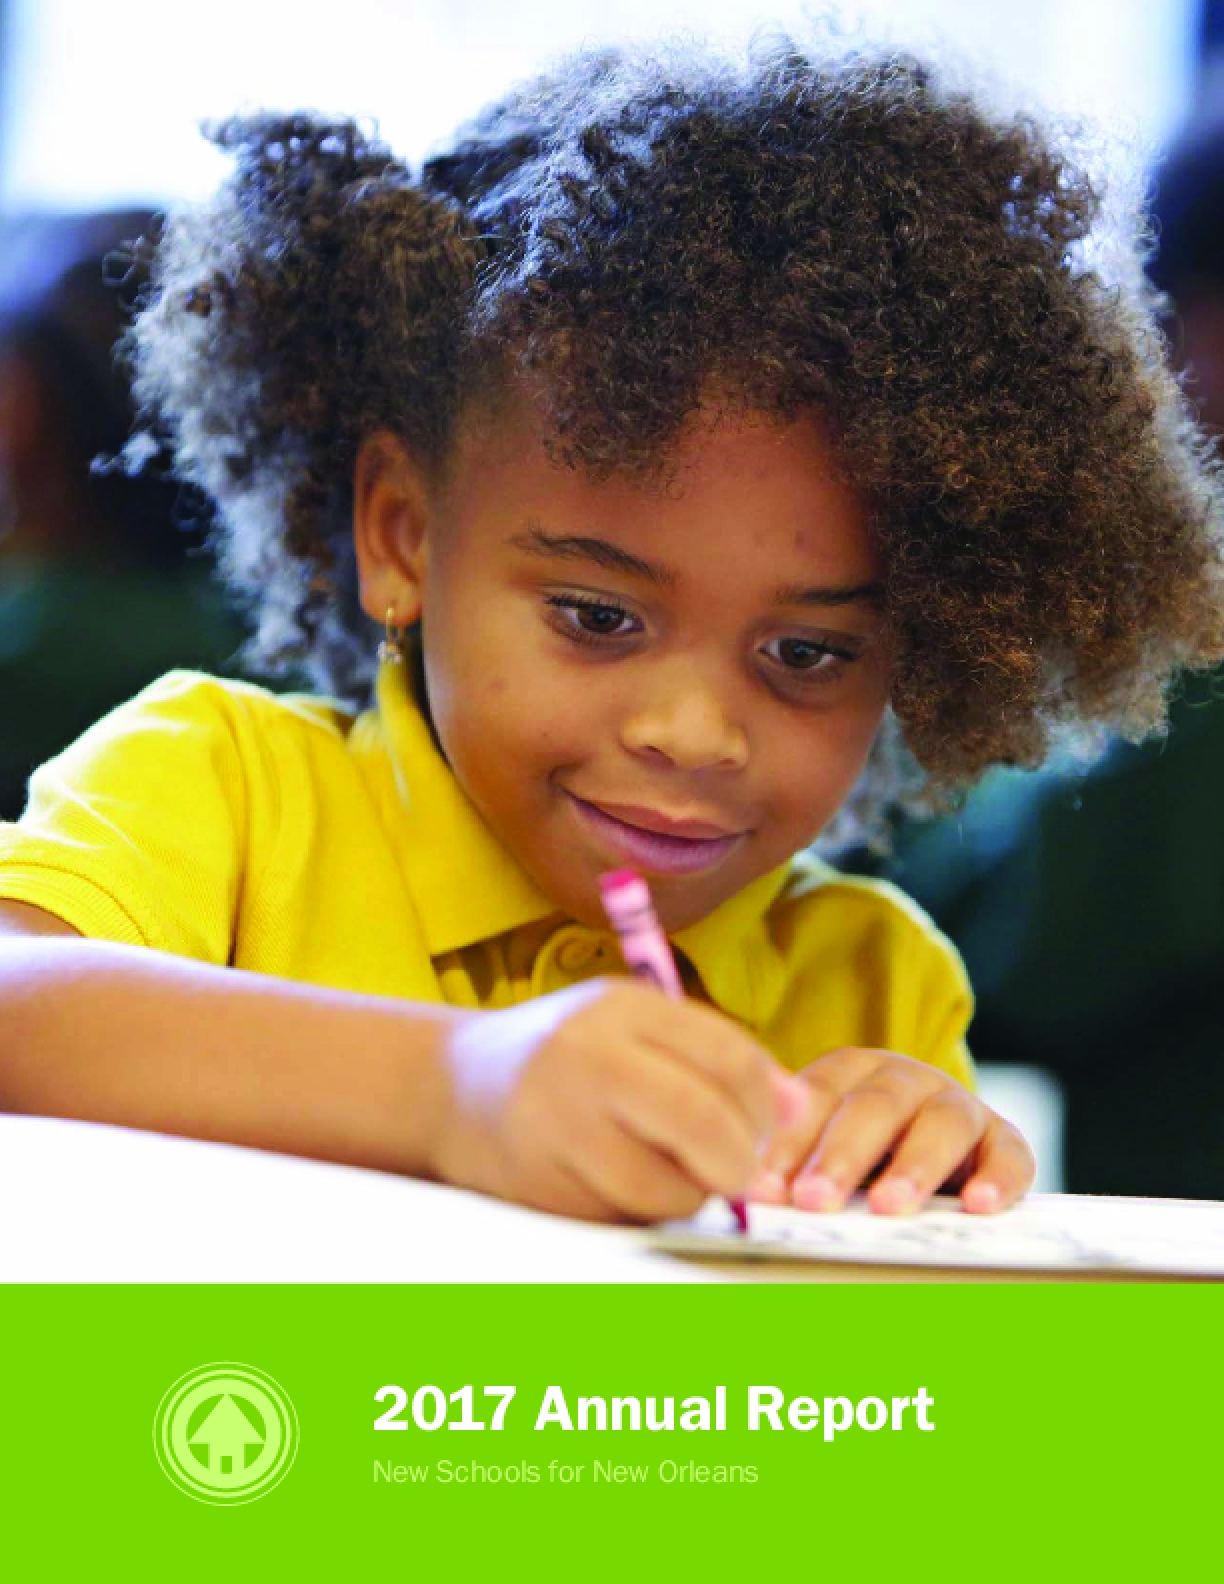 2017 Annual Report: New Schools for New Orleans